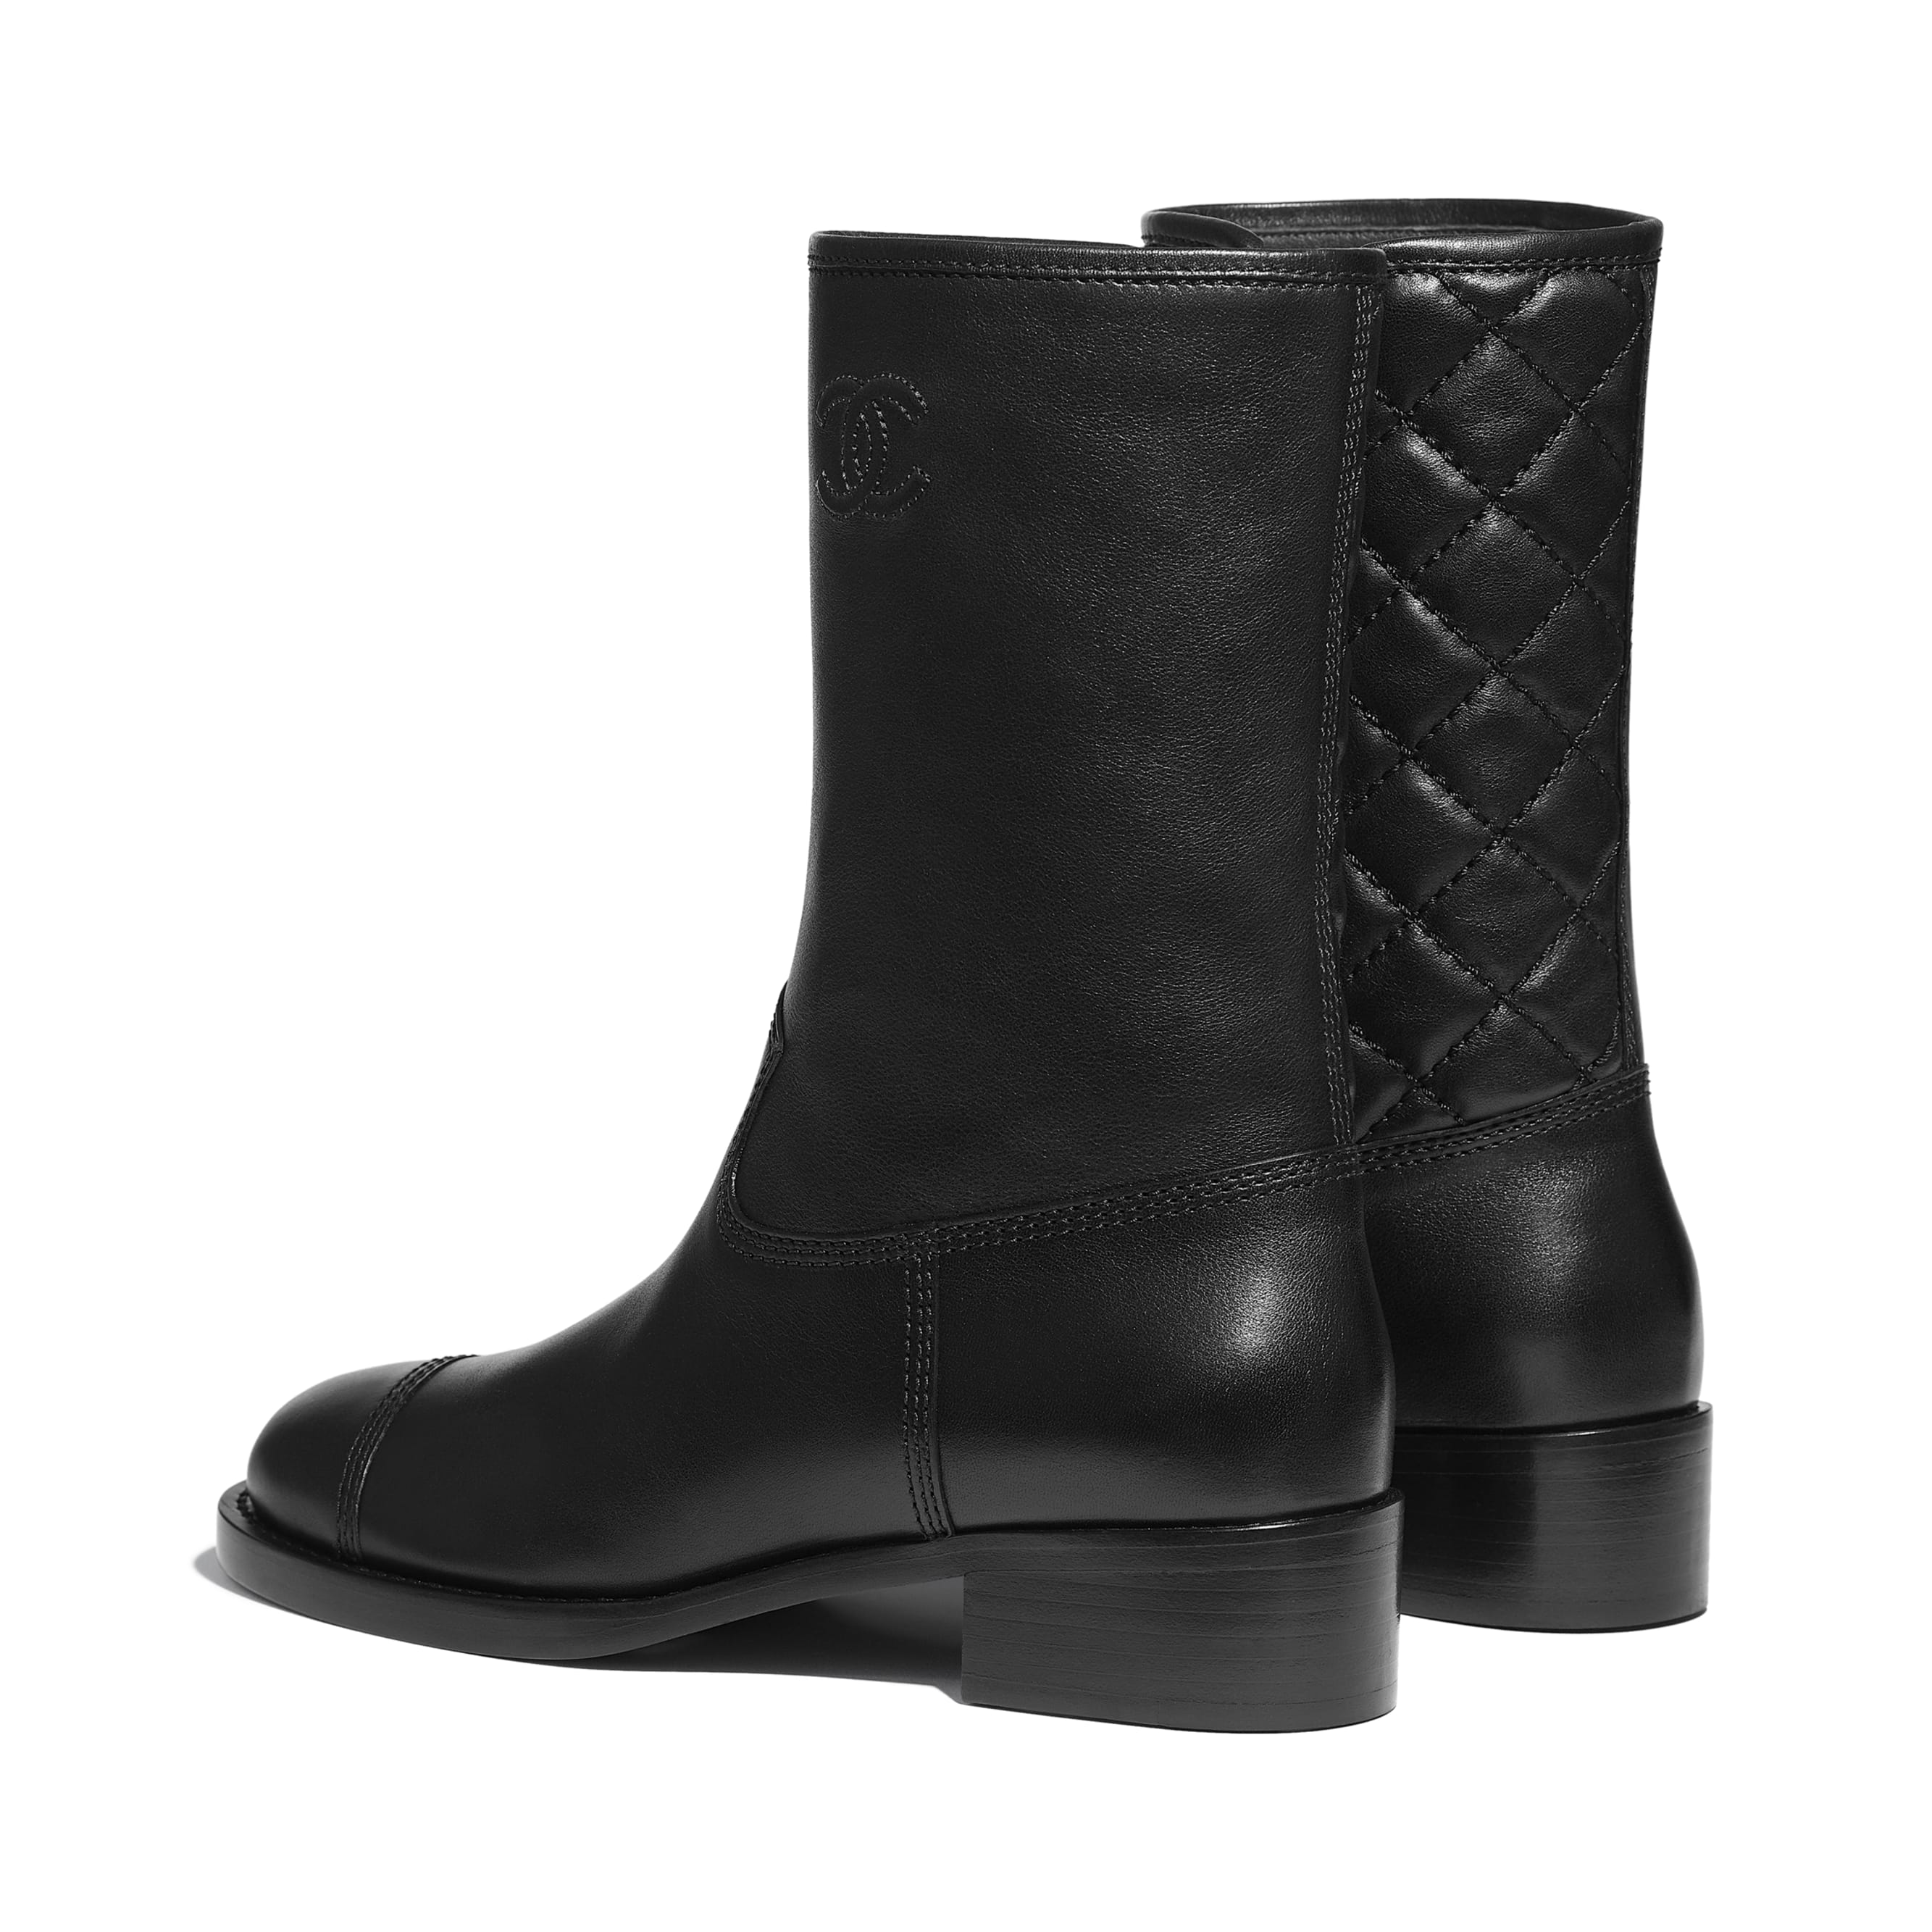 Mid-Calf Boots - Black - Calfskin - CHANEL - Other view - see standard sized version